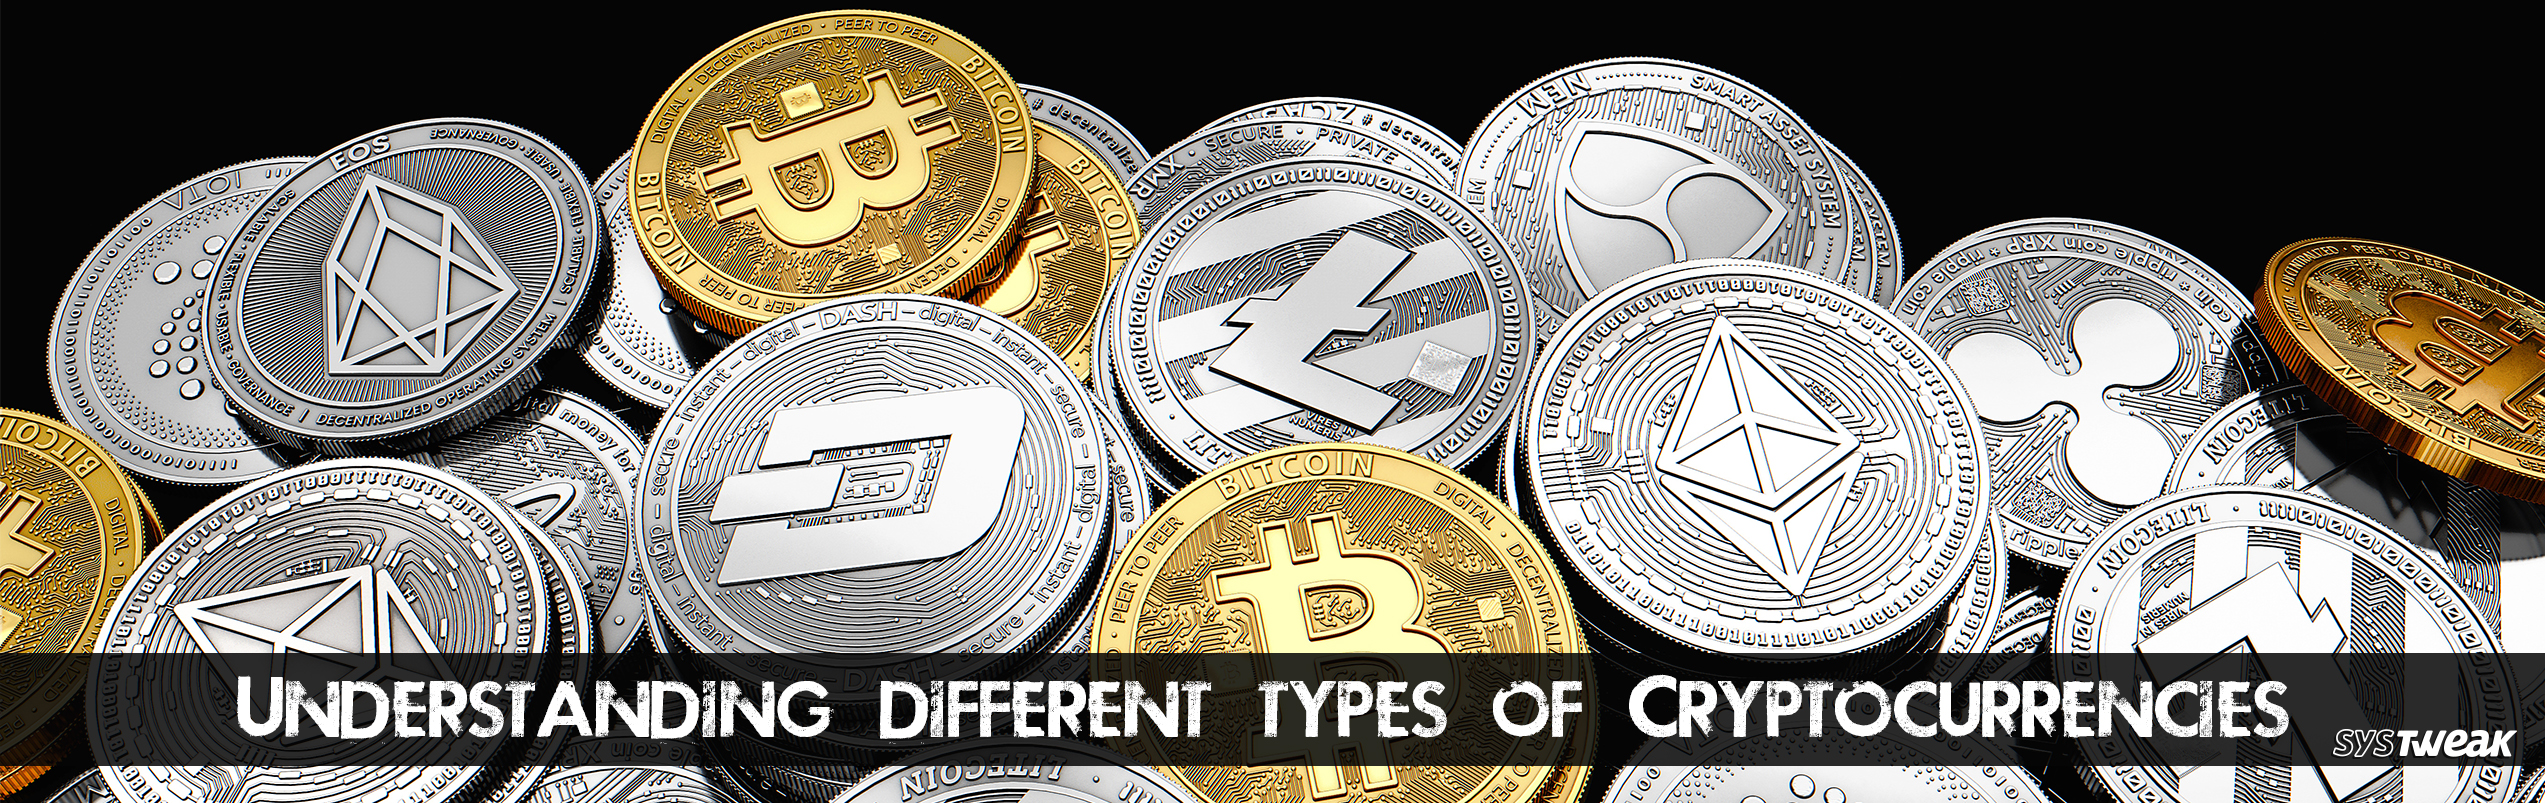 What Are The Different Types Of Cryptocurrencies